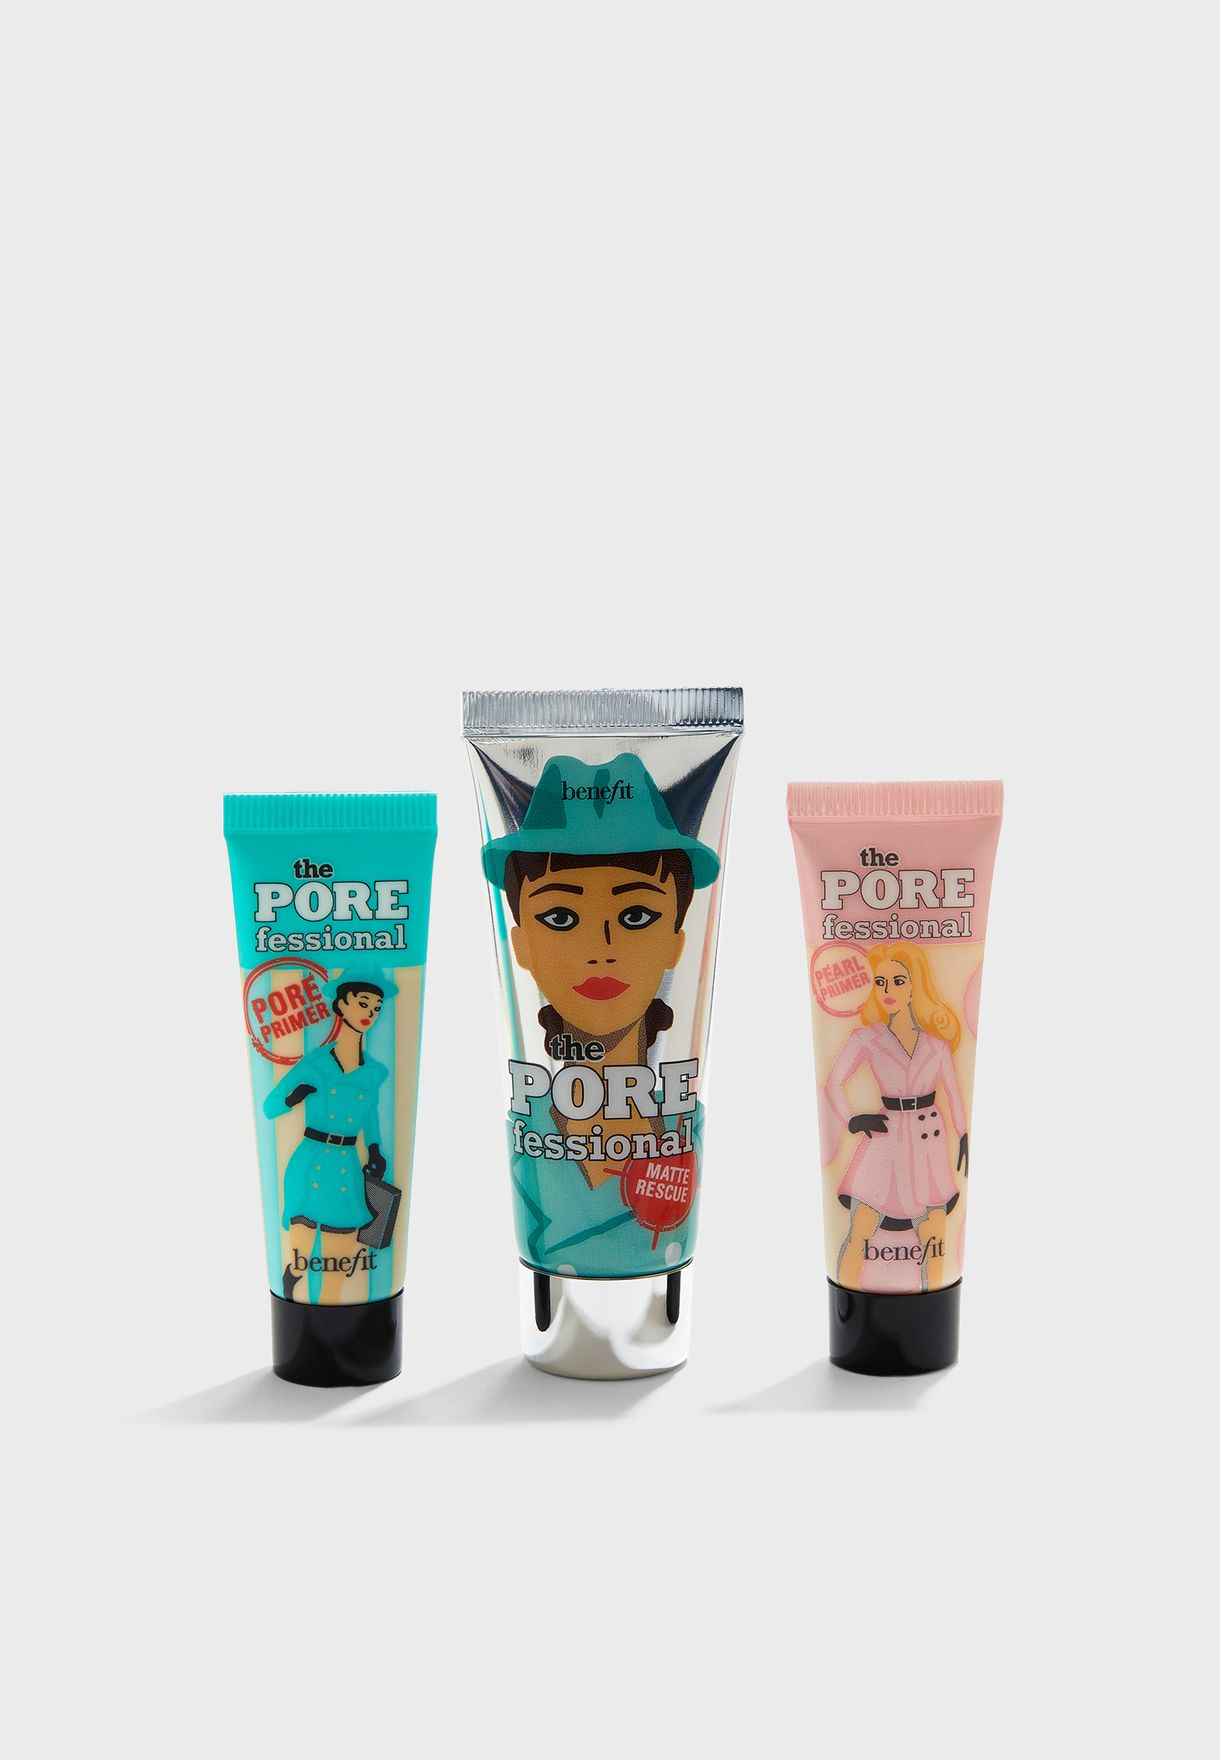 Meet The Porefessionals - Prep Your Pores Starter